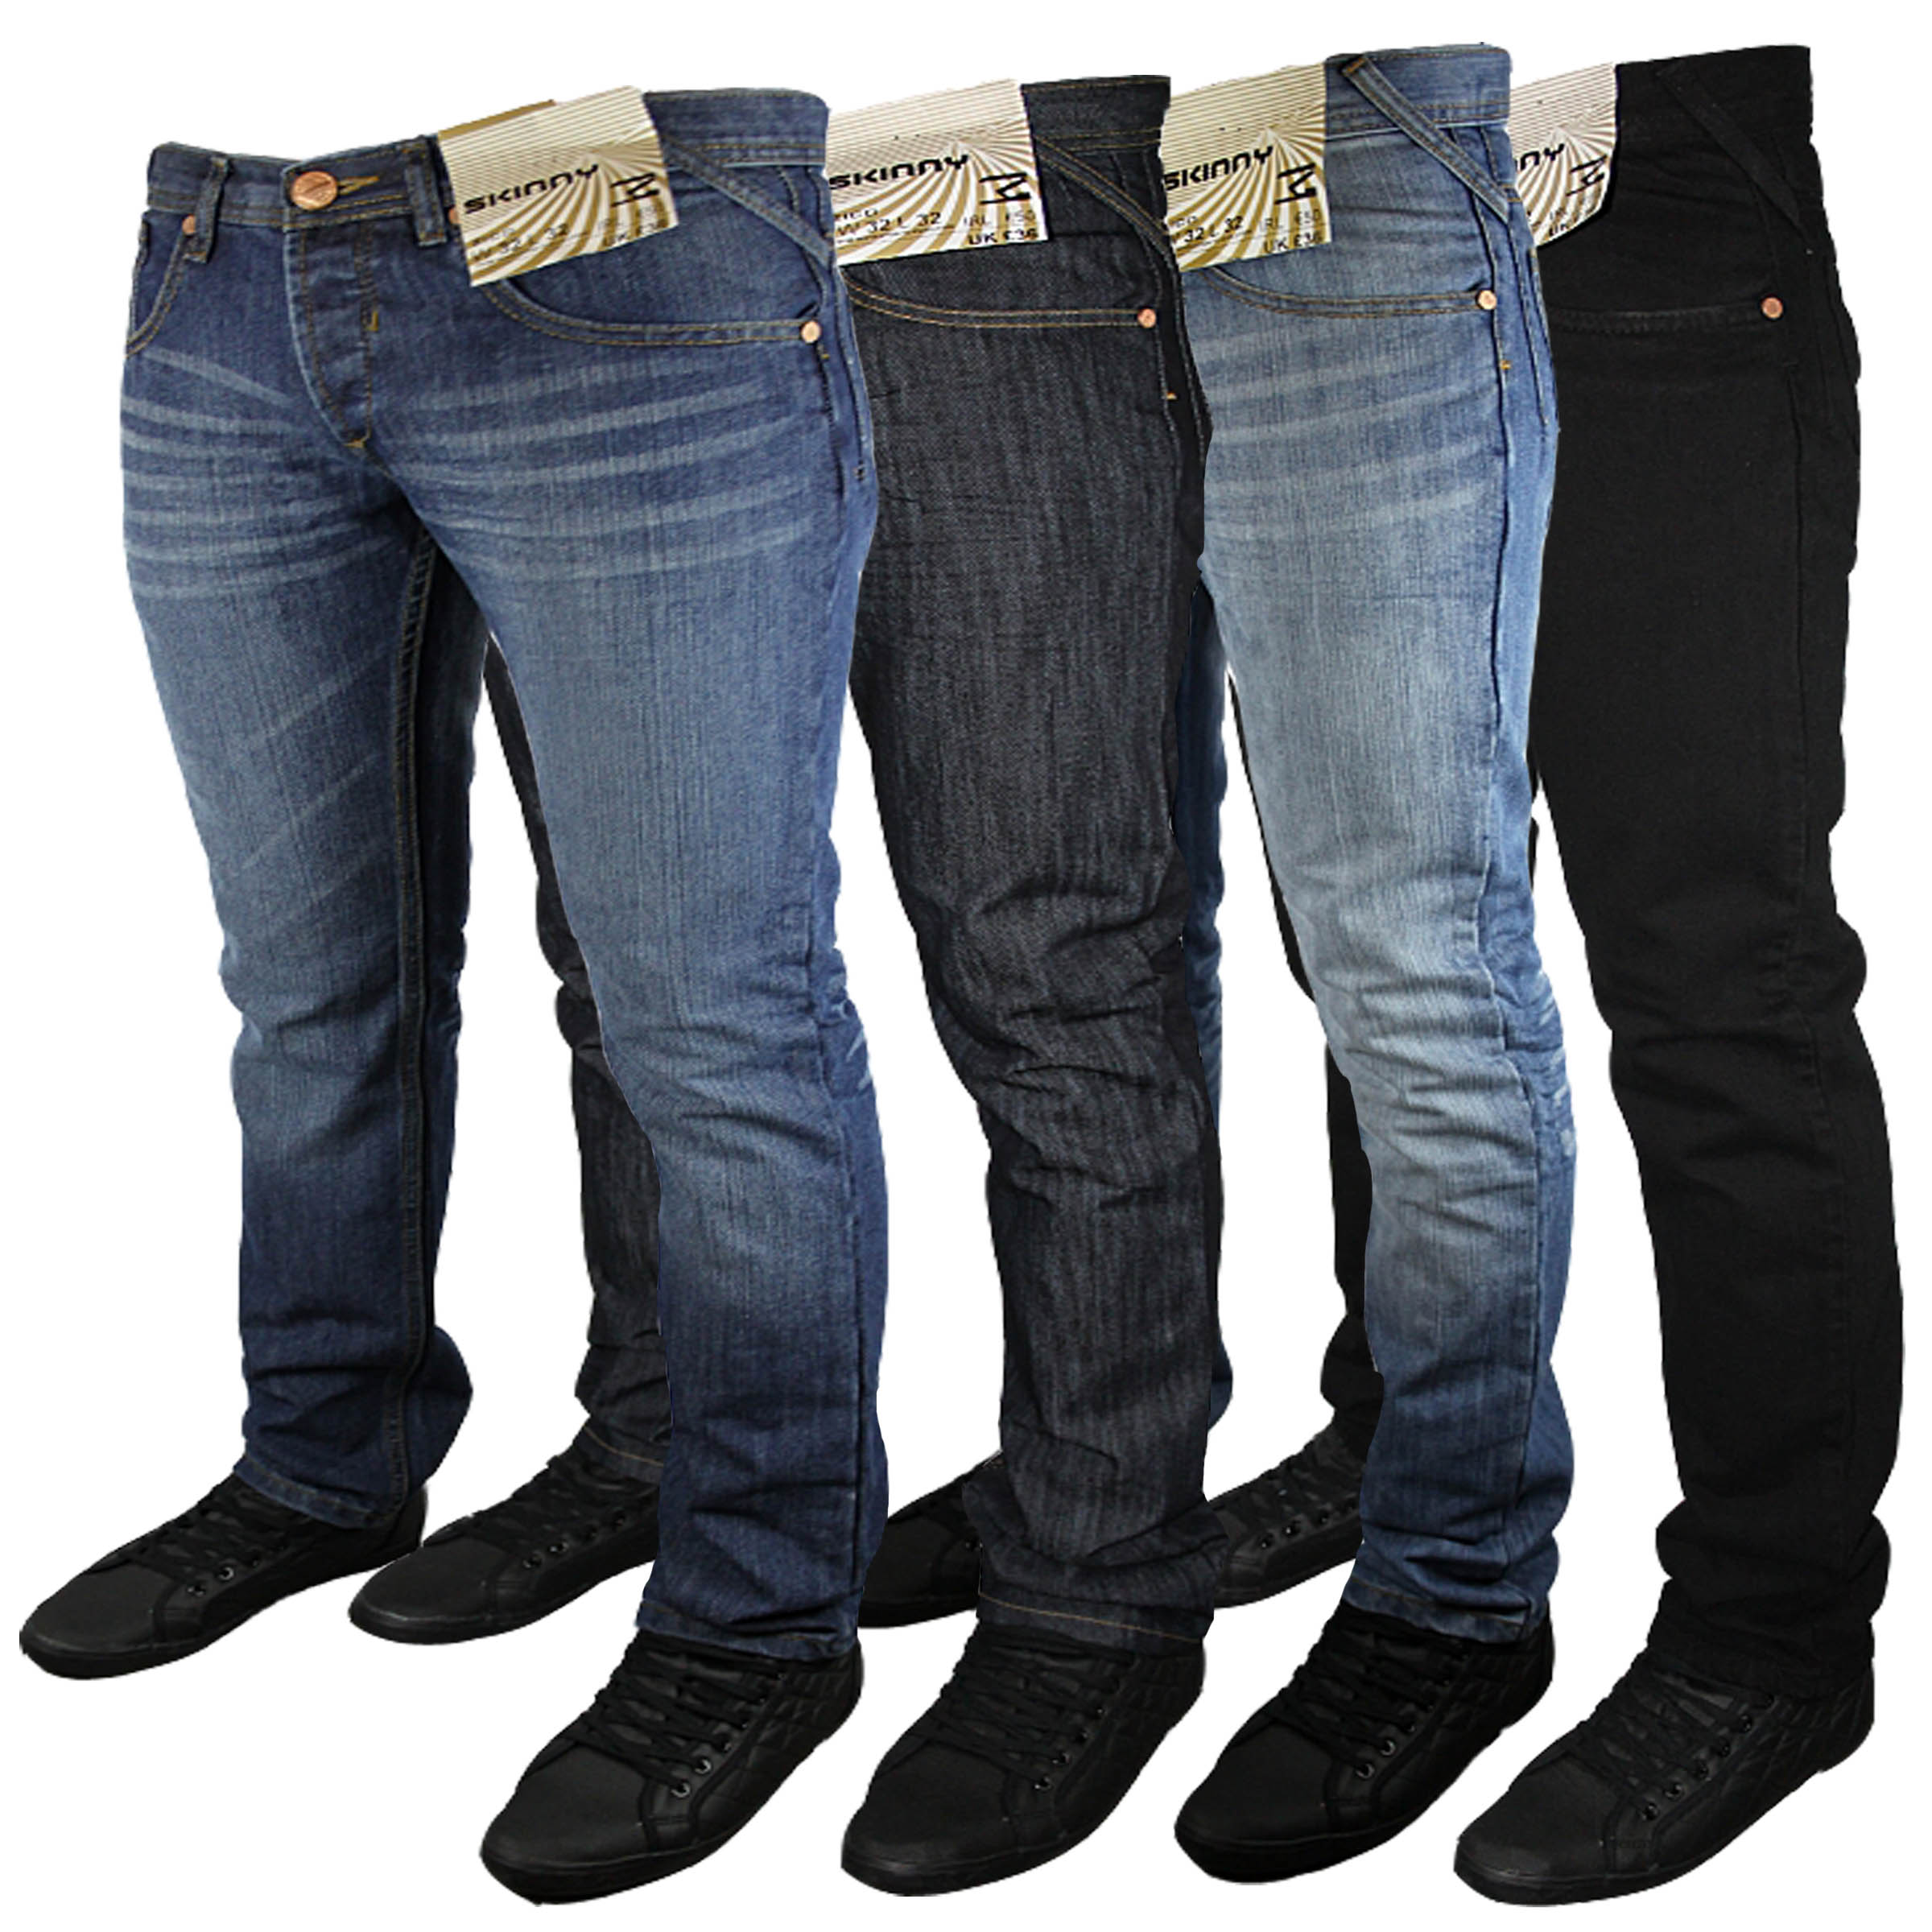 MENS ZICO SKINNY BASIC DESIGNER BRANDED SLIM FIT JEANS ALL WAIST